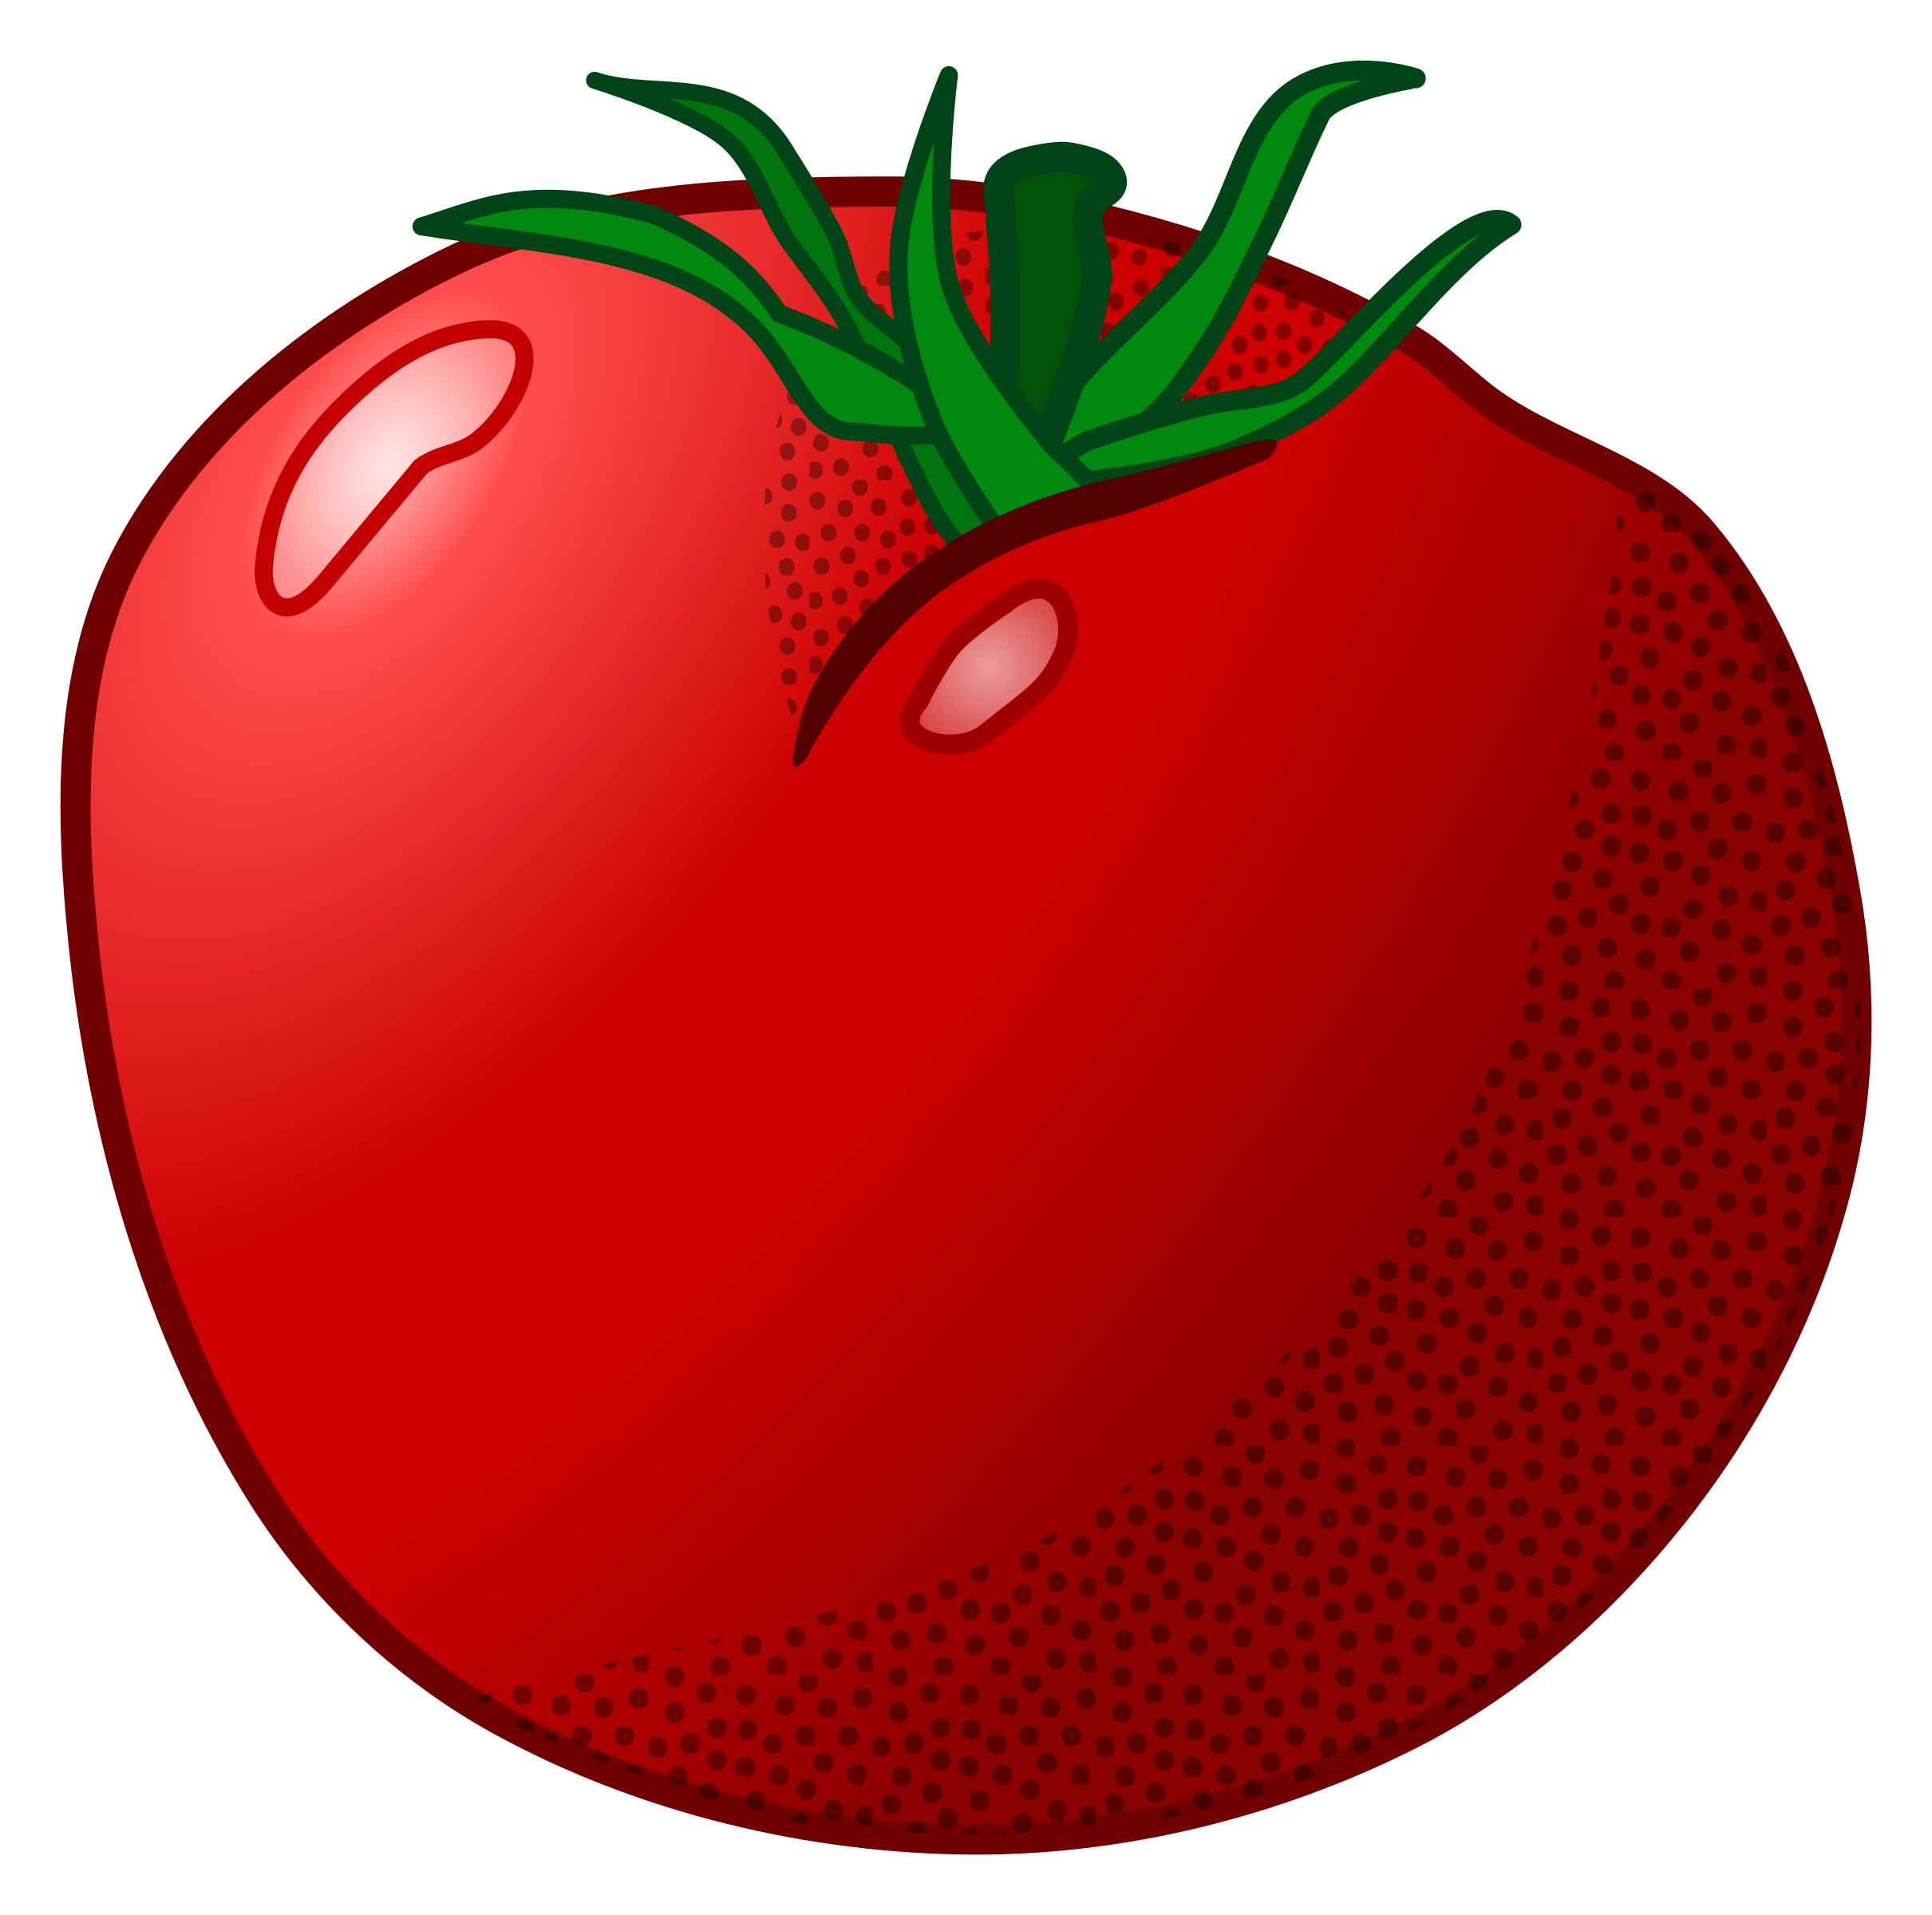 Tomato clipart kamatis. Tomatoes clip art free